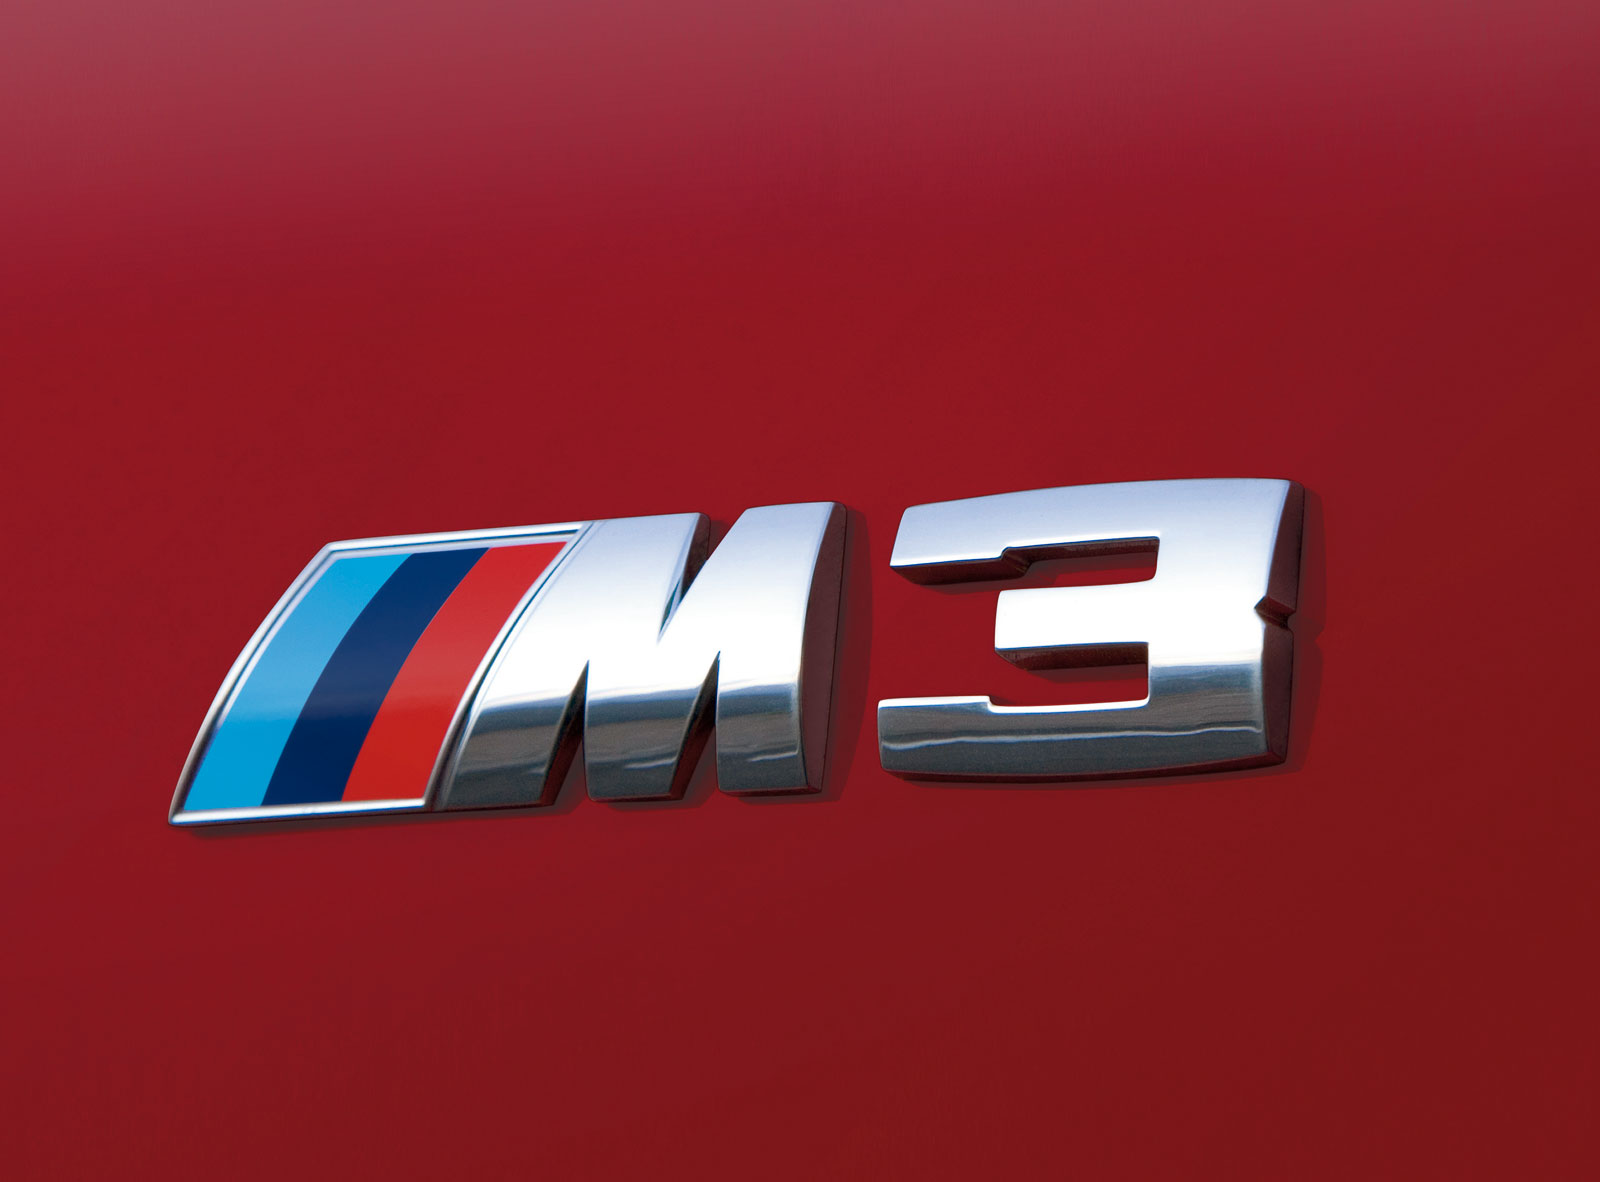 Manual Bmw M3 Reportedly Not Completely Ruled Out